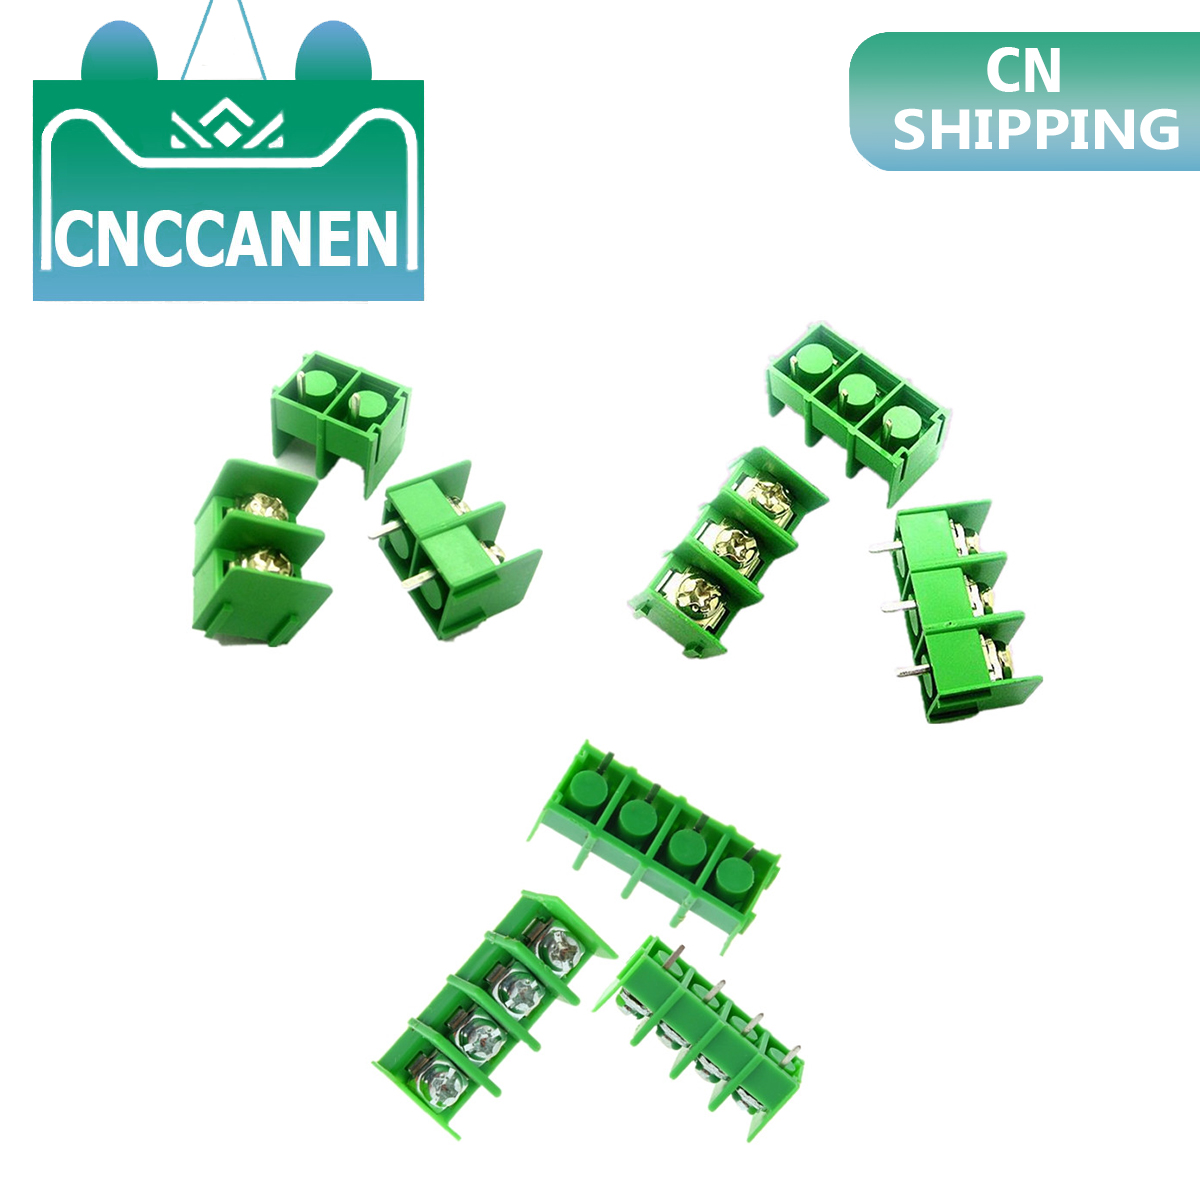 10PCS/lot KF7.62 - 2P 3P 4P MG7.62 - <font><b>2</b></font> 3 <font><b>4</b></font> <font><b>Pin</b></font> Can be spliced Screw Terminal Block Connector Green 7.62mm Pitch 300V 10A image